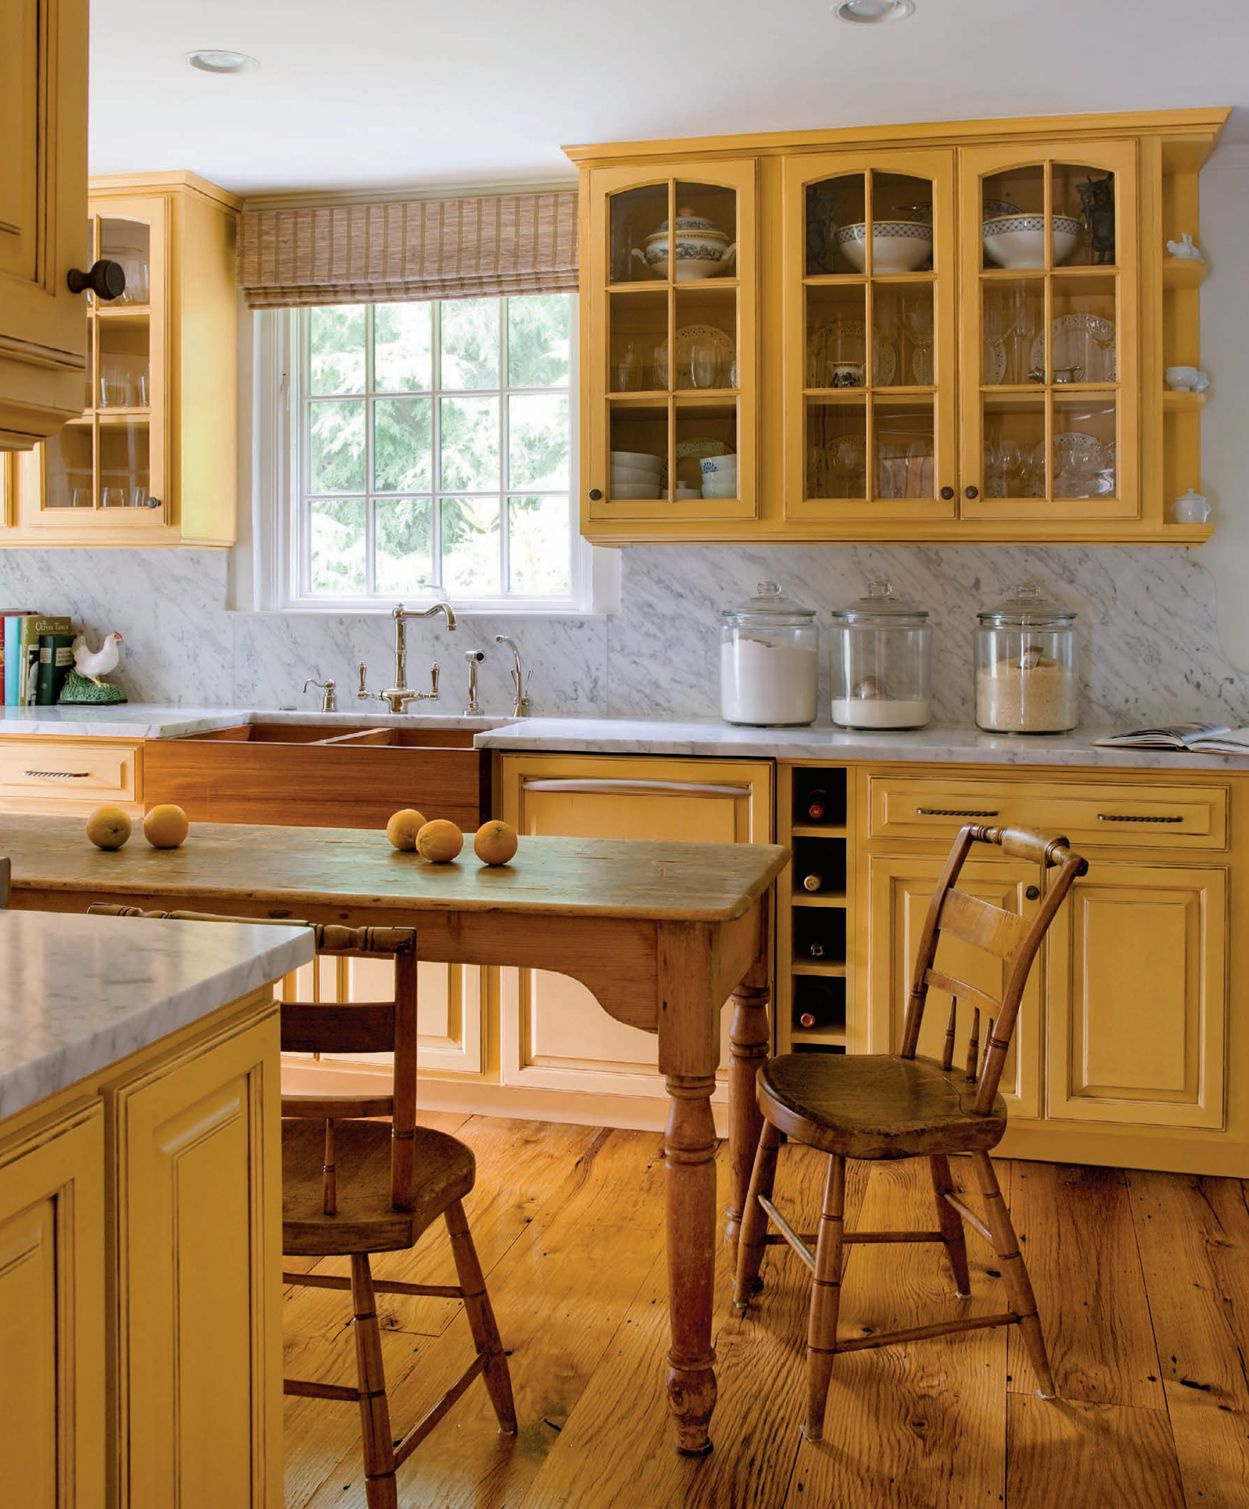 Pale Yellow Kitchen Cabinets: Yellow Kitchen Cabinets, Country